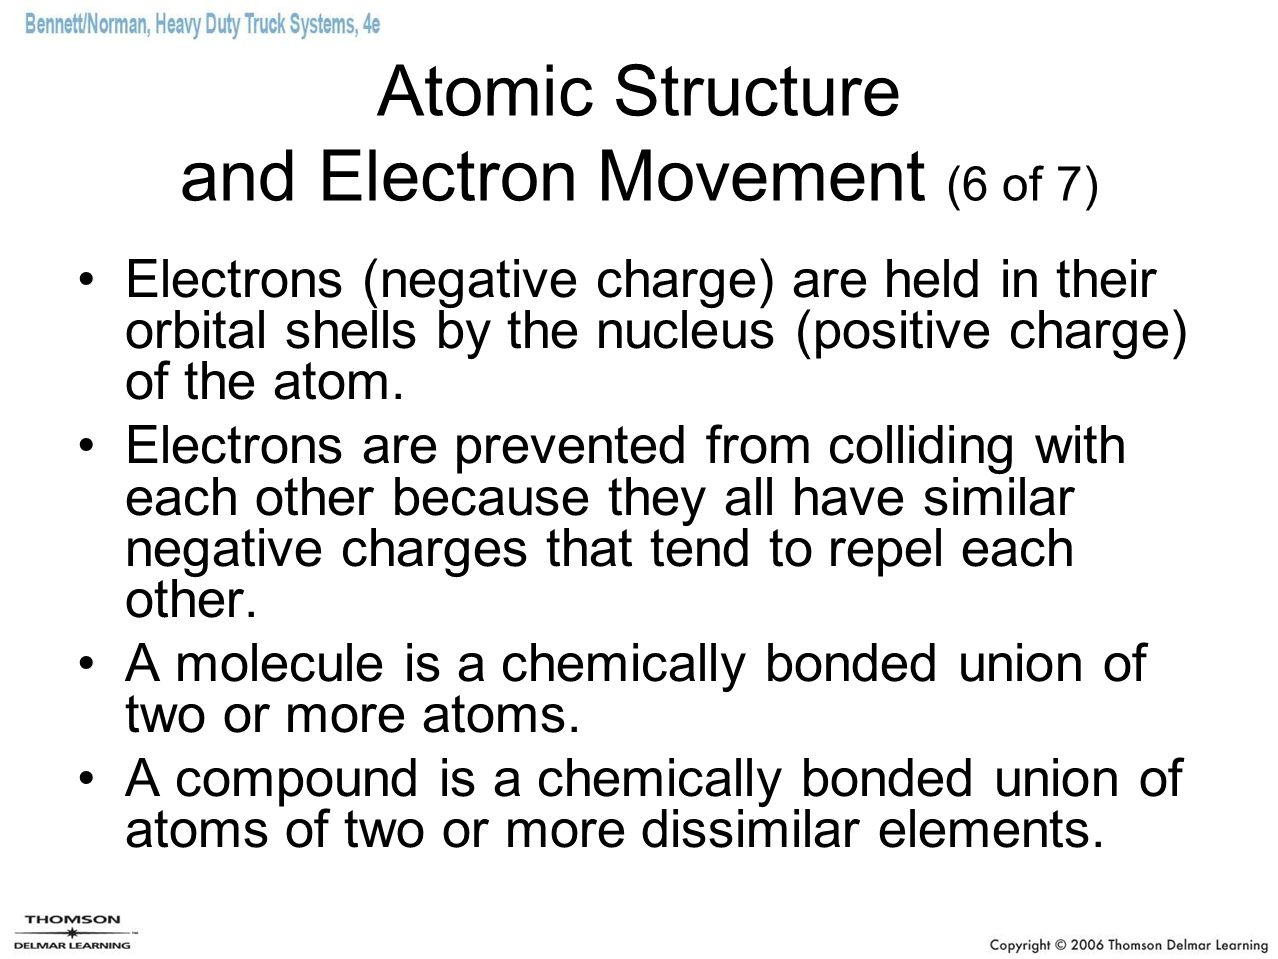 Atomic Structure and Electron Movement (6 of 7)